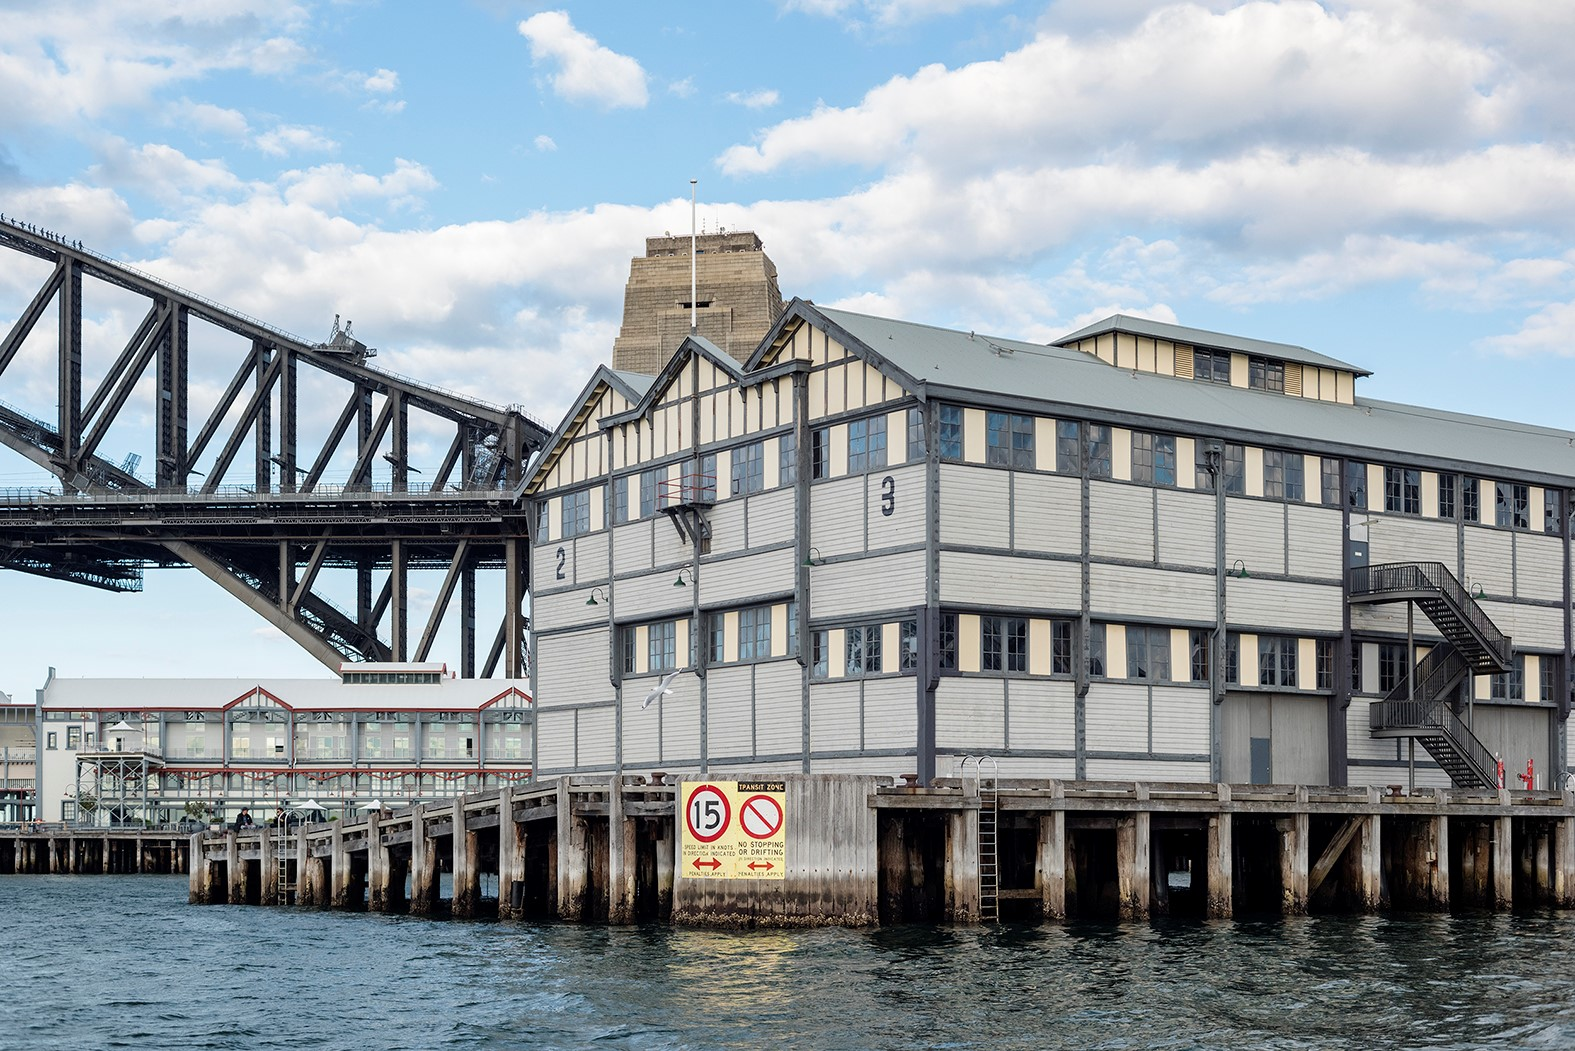 Building on sydney waterfront with harbour bridge in background